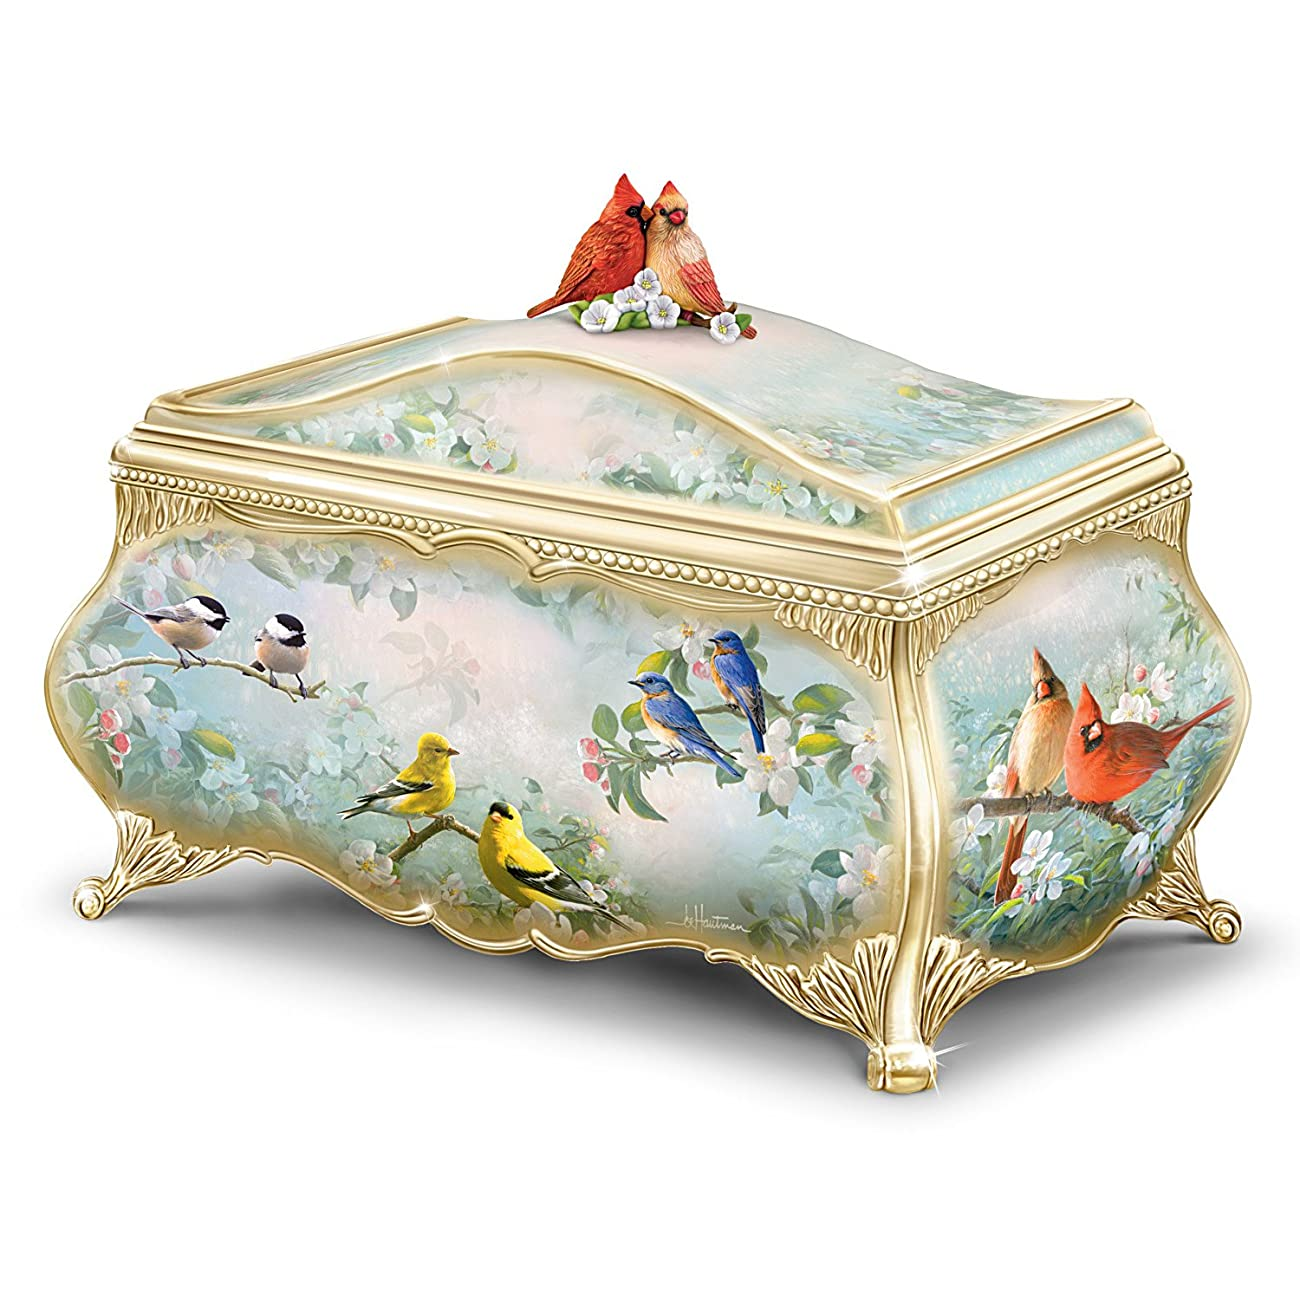 Joe Hautman Songbird Artwork Porcelain Music Box with 22K Gold Sentiment by The Bradford Exchange 0